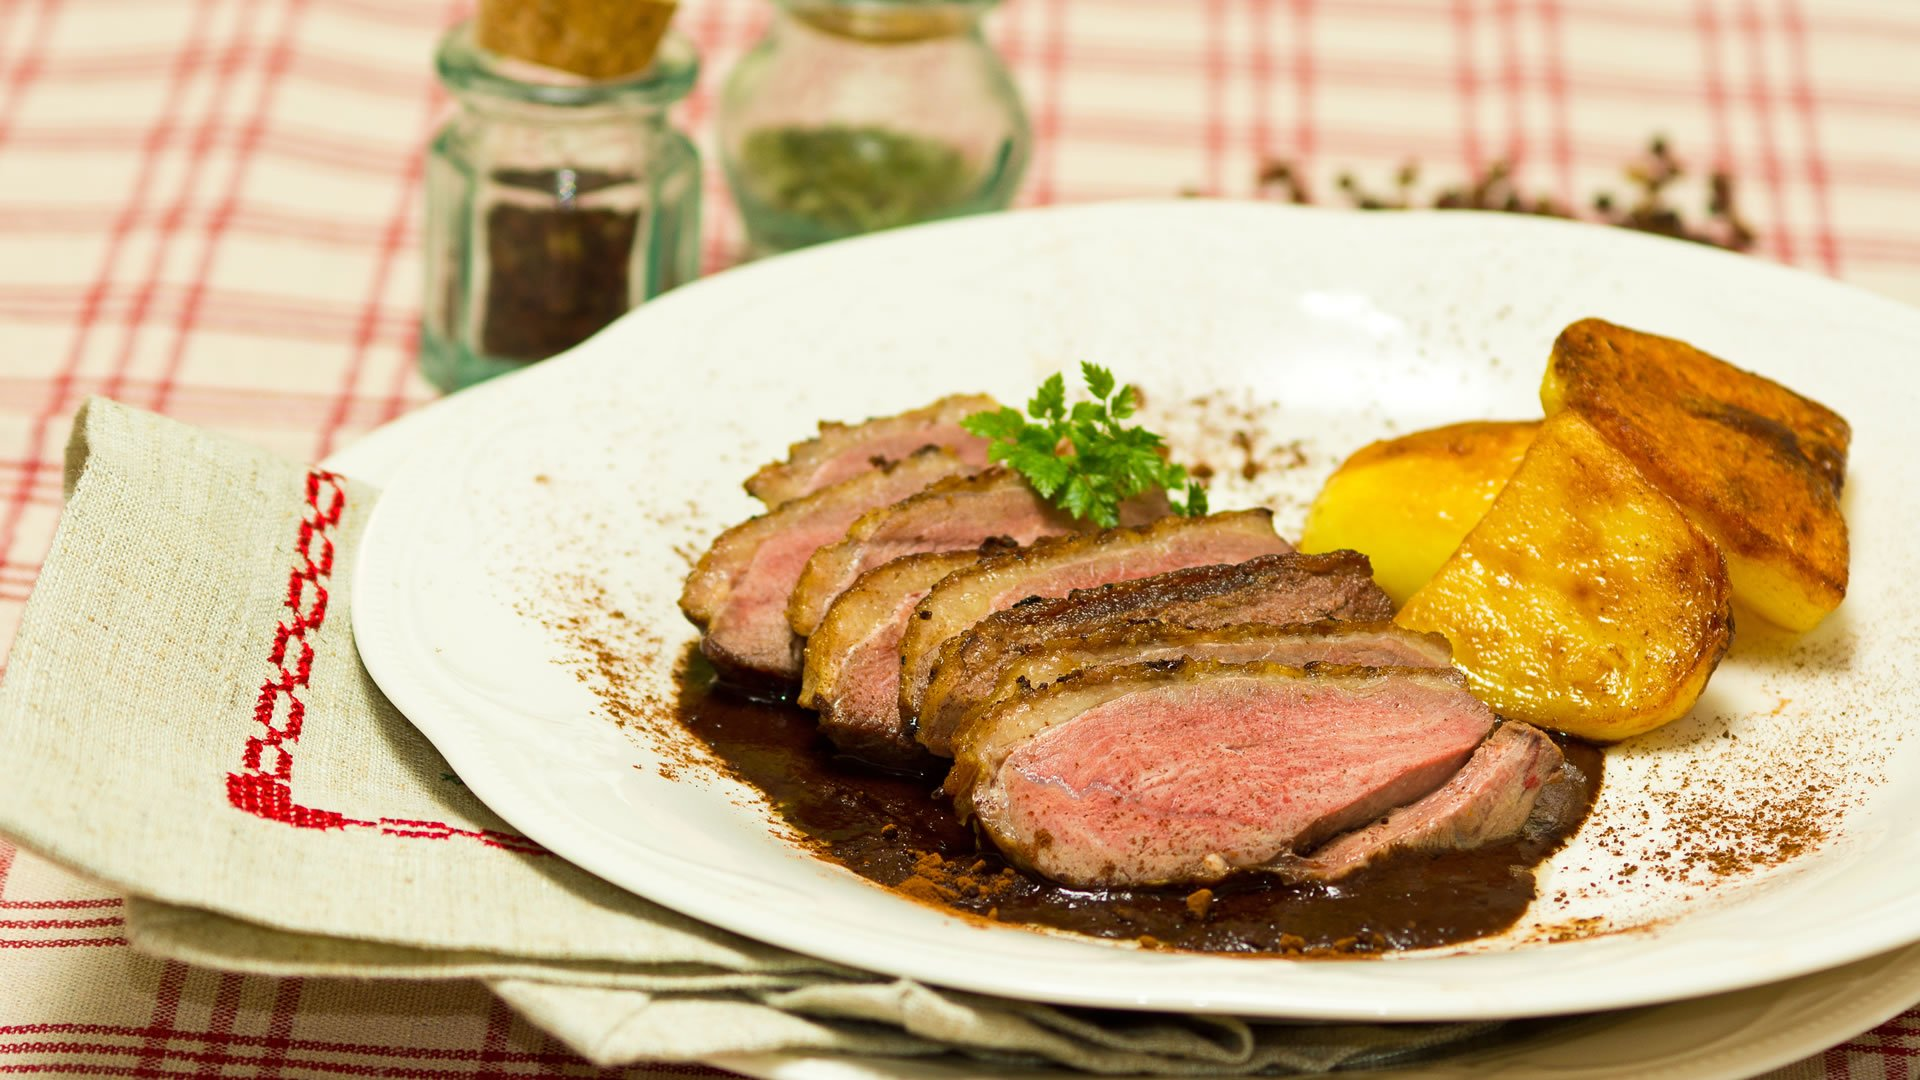 Magret de canard for Platos franceses